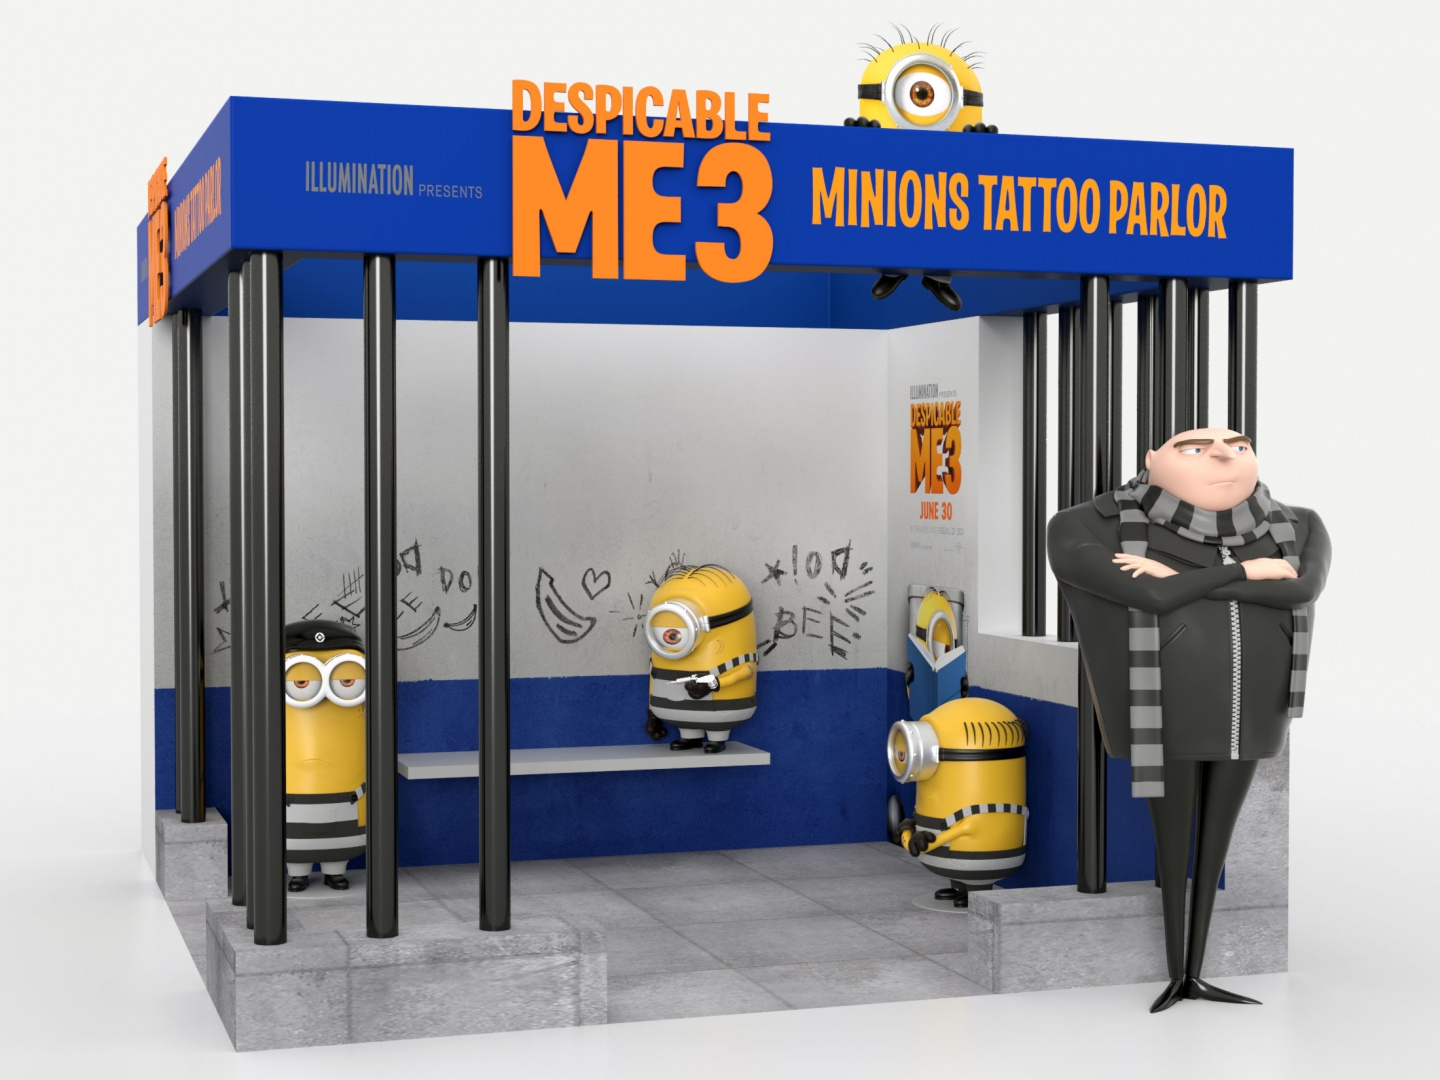 Despicable Me 3 Tattoo Parlor Theatrical Display: Specialty Thumbnail